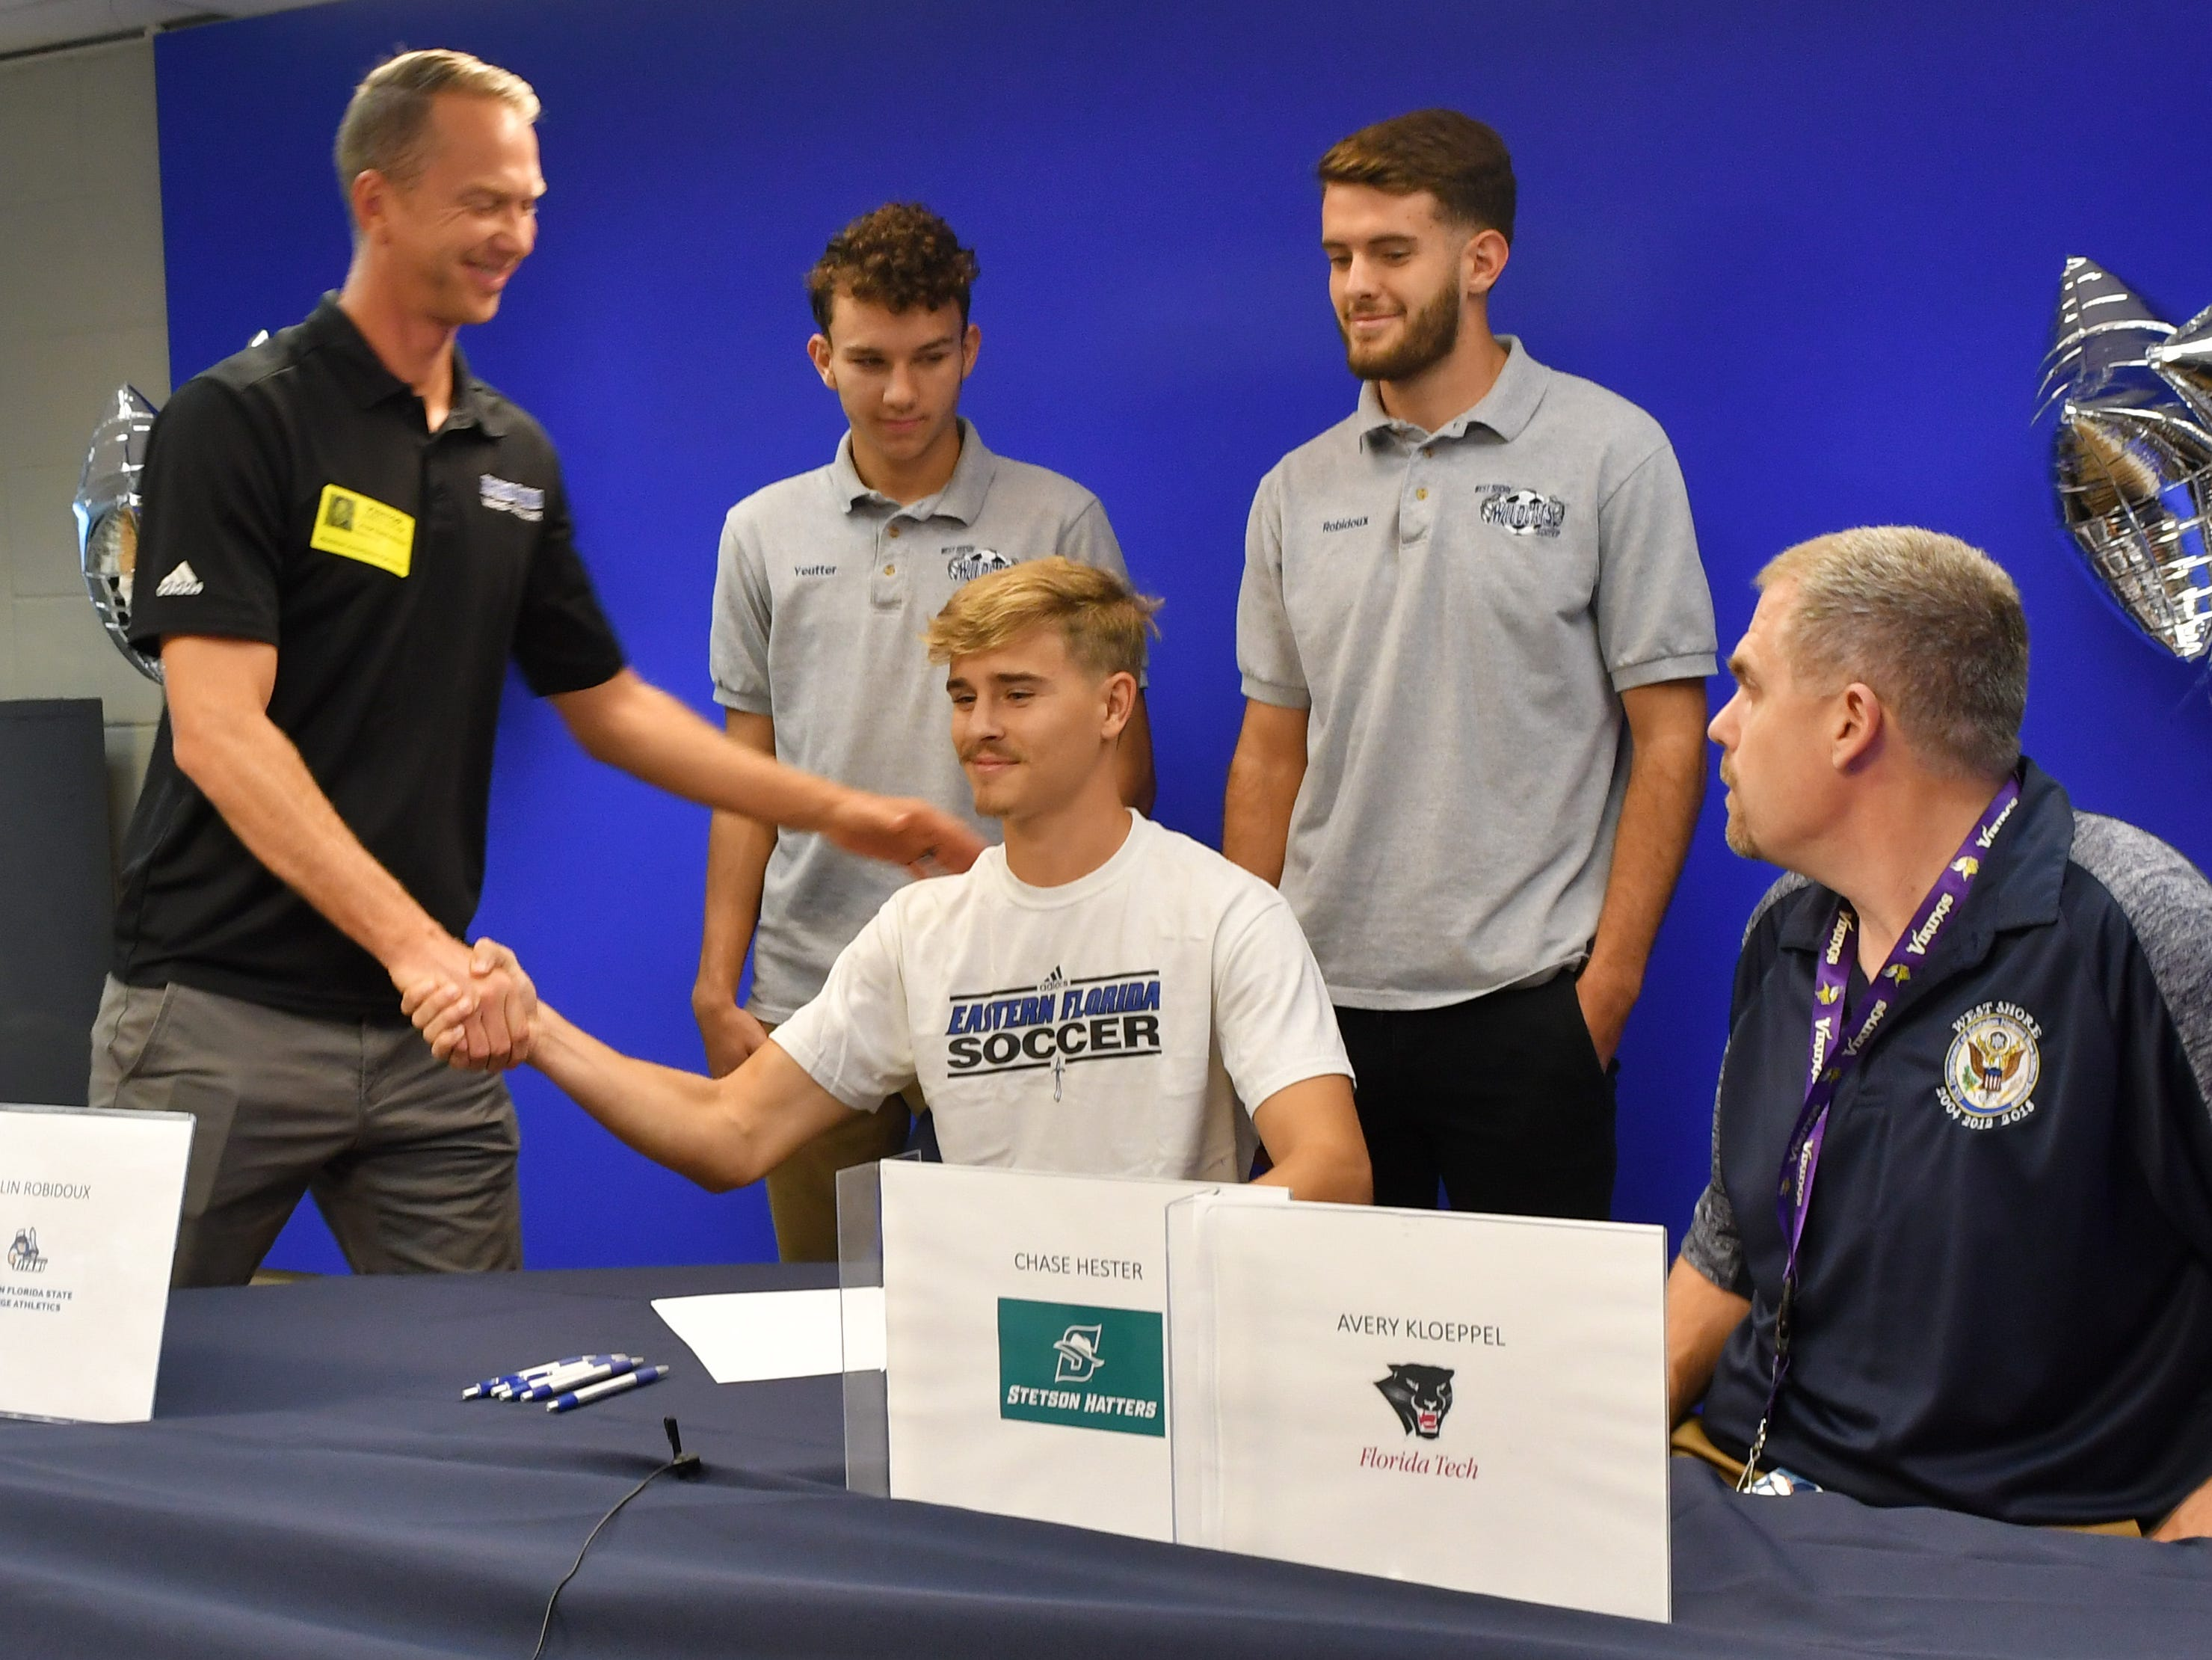 Ian Leighton signs with Eastern Florida State College. Five soccer athletes from West Shore Junior/Senior High School in Melbourne signed letters of intent on Wednesday.